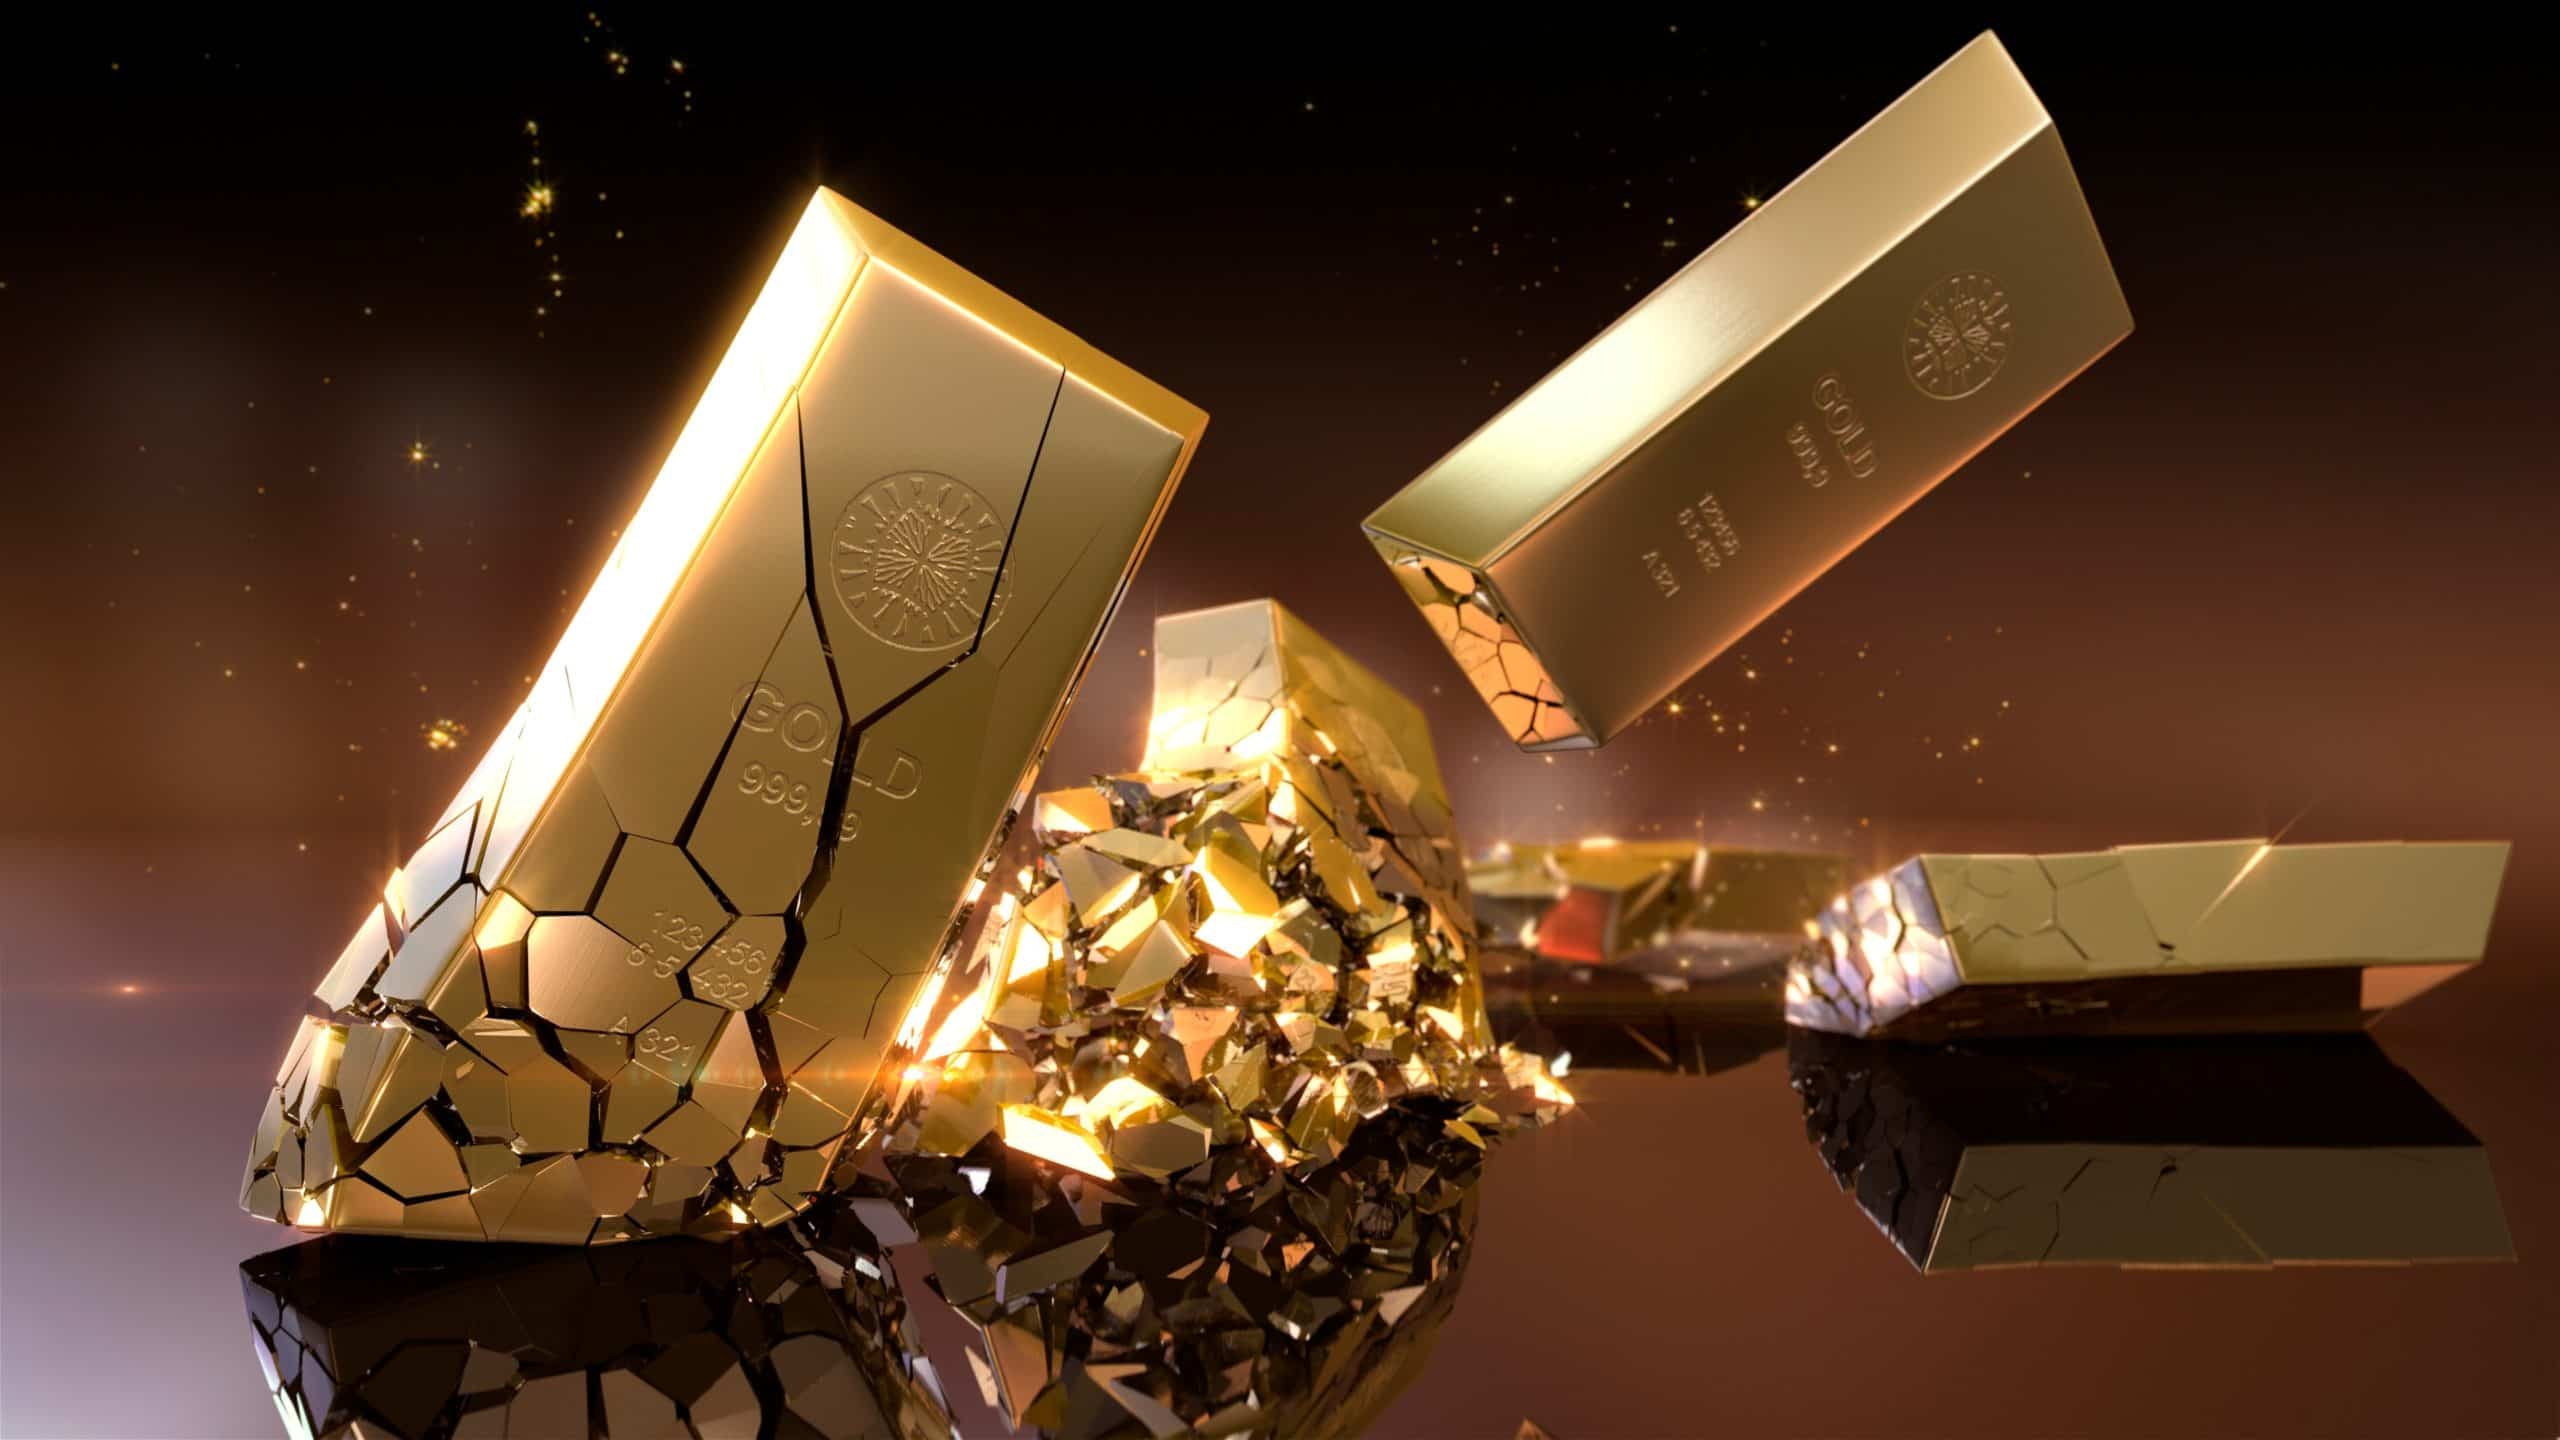 gold bars fulling to the ground and smashing representing falling prices of ASX gold shares